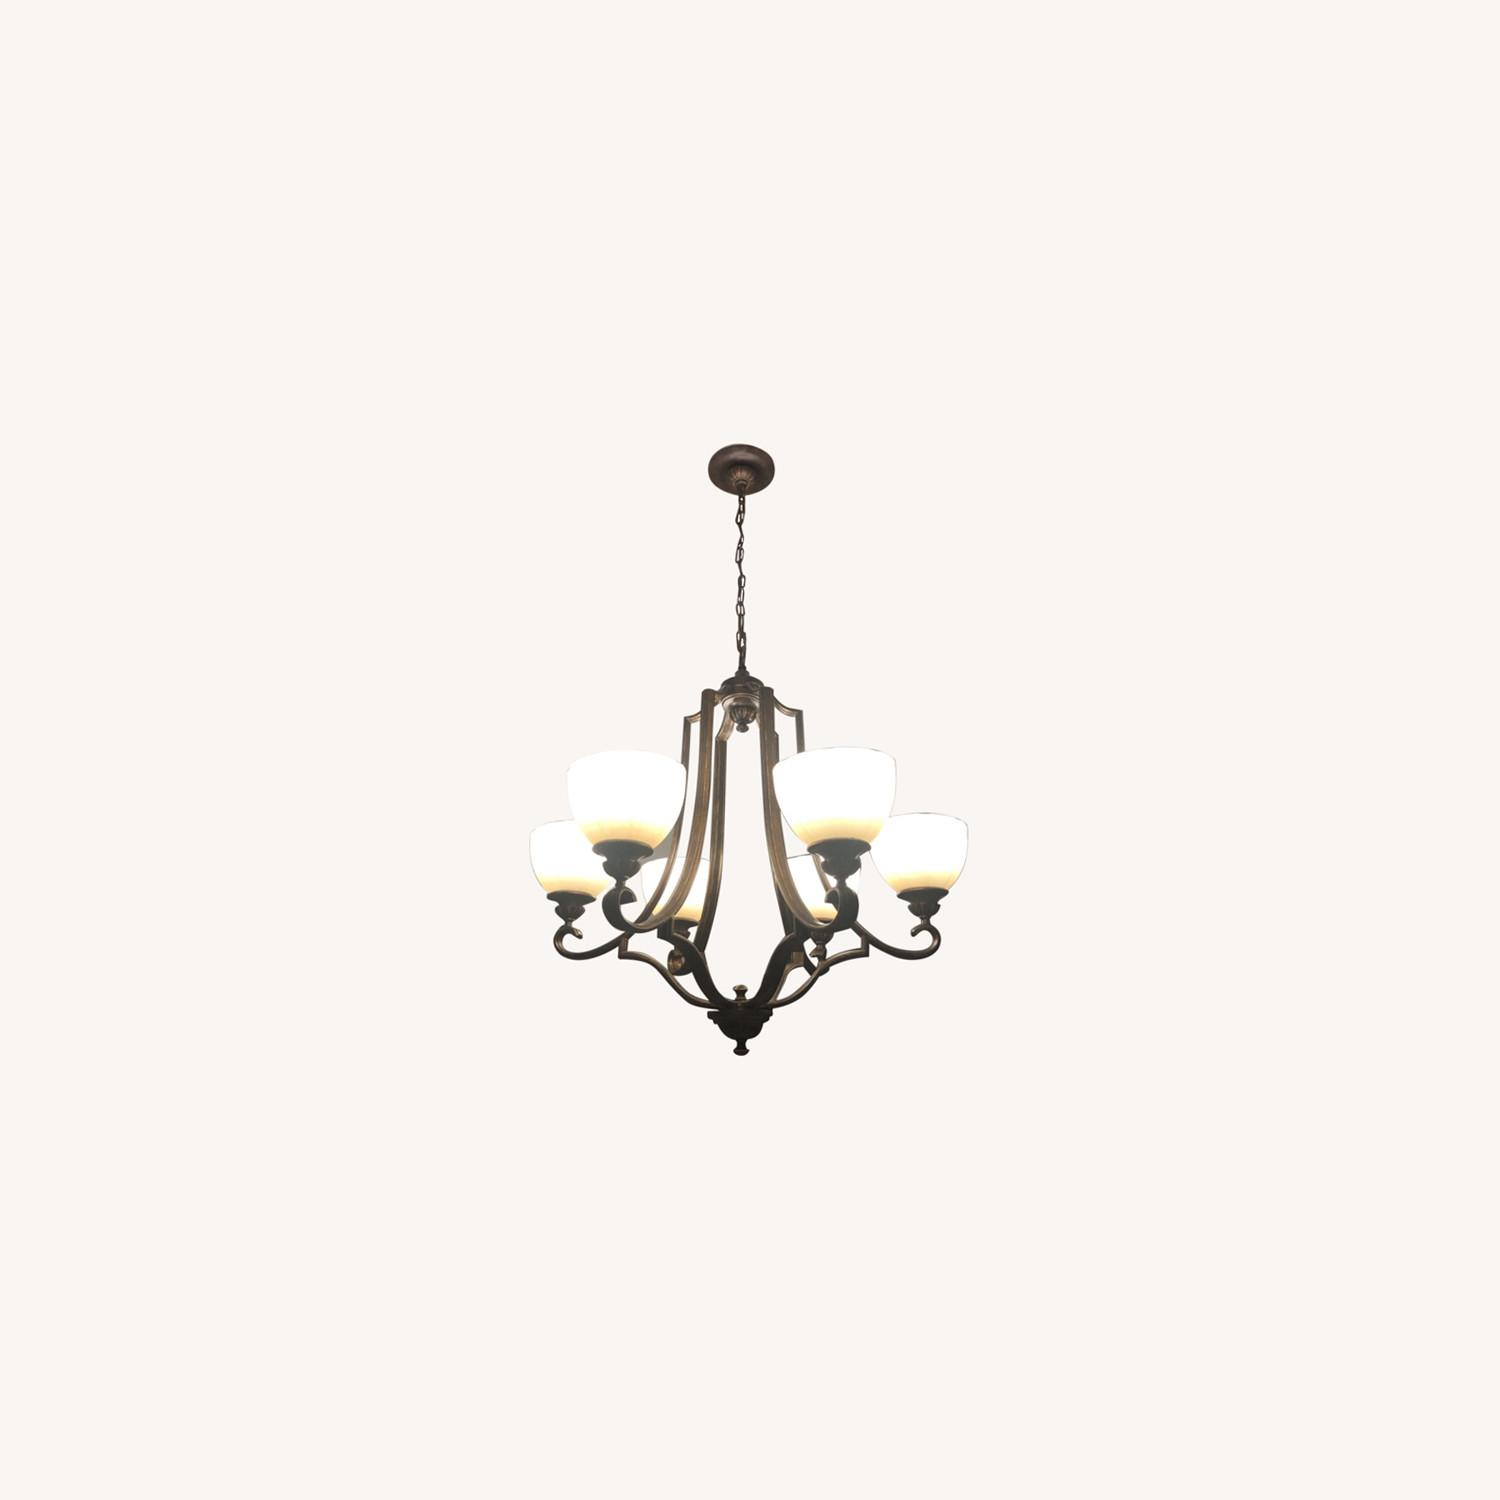 Feiss Chandelier & Lateral Ceiling Lighting - image-0